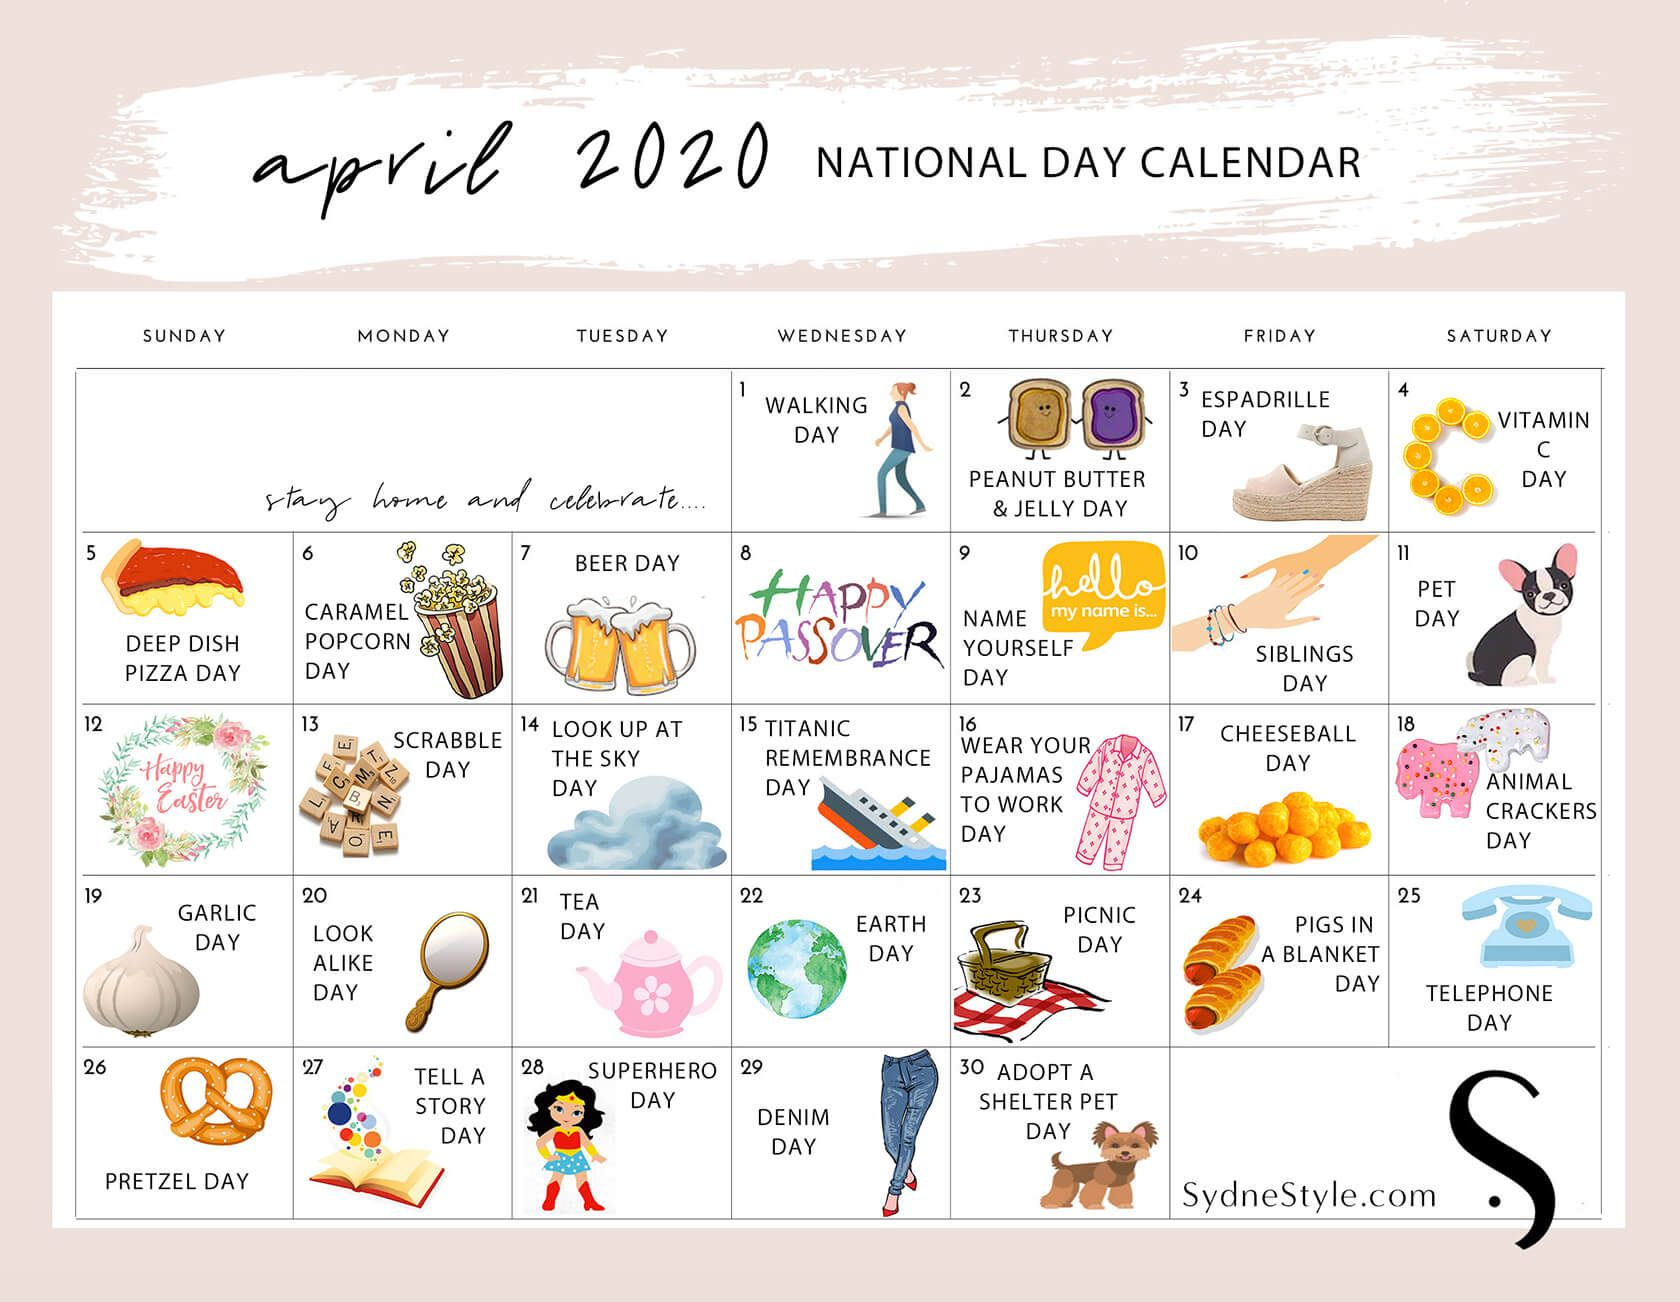 April National Days 2020 Calendars Celebrate Every Day